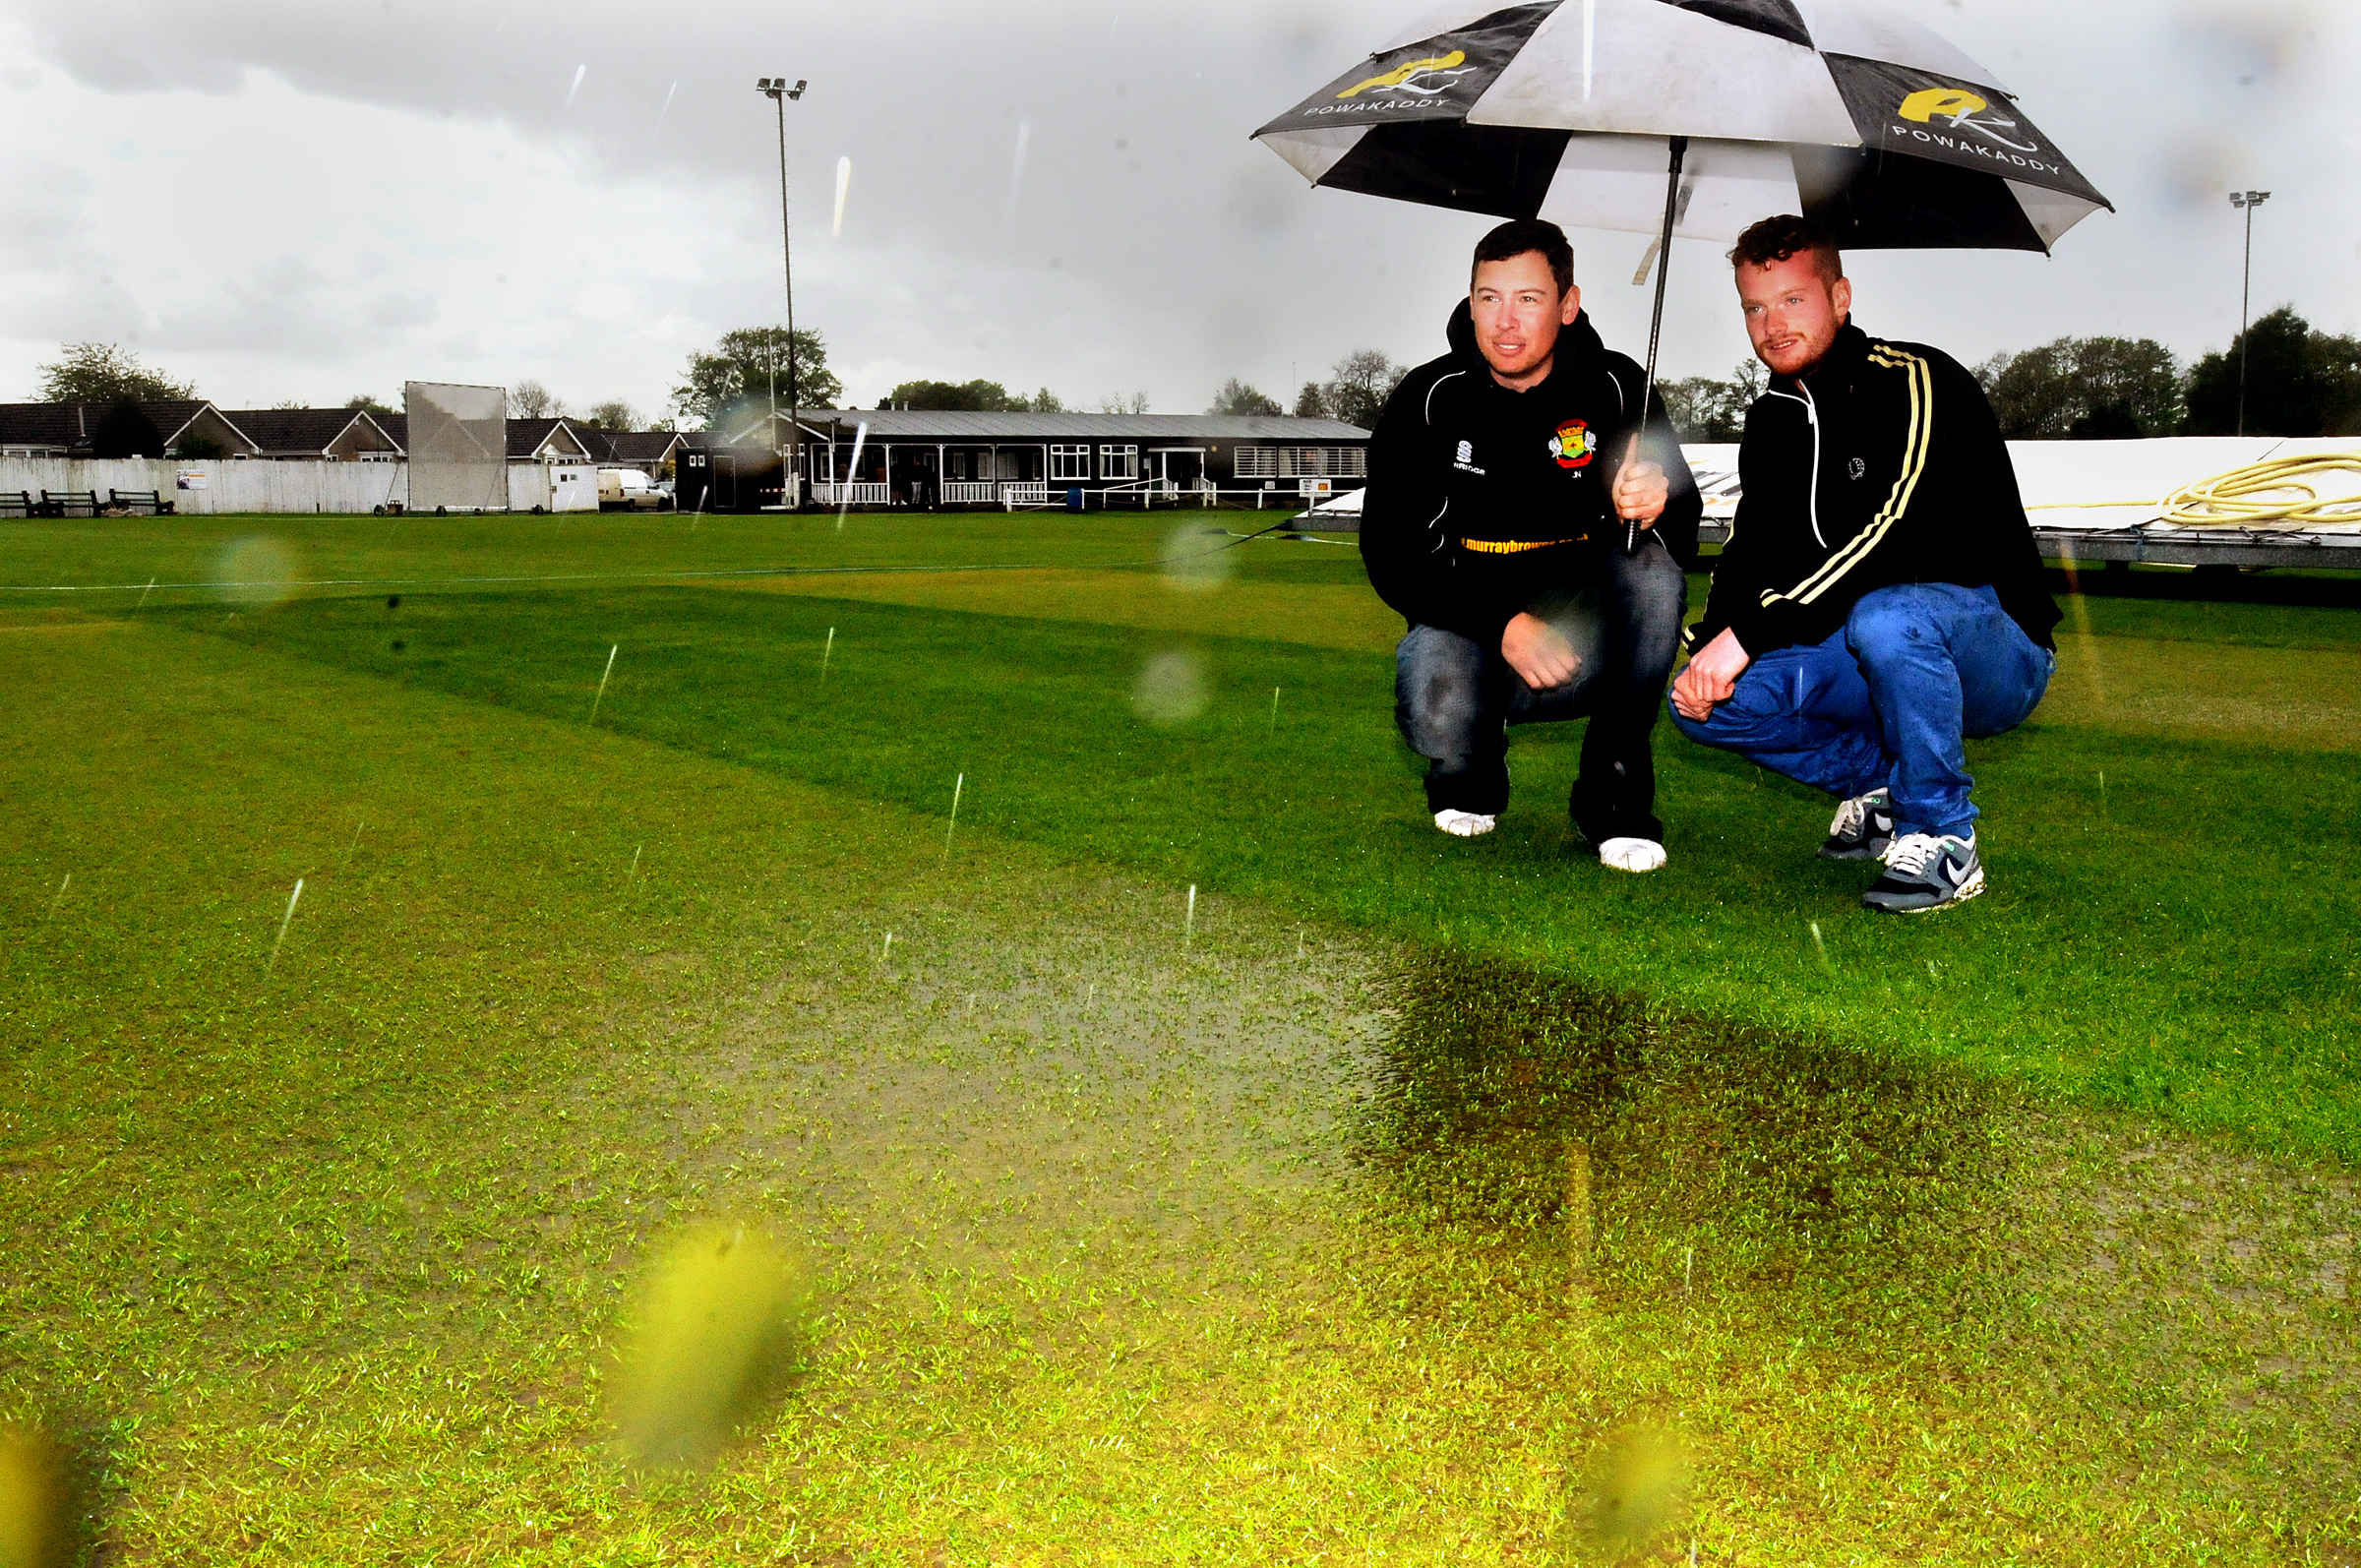 Captains (left) Jamie Nesfield of Folkston and Flixton and Ryan Boyes of Pickering consider the water logged state of the ground at Pickering